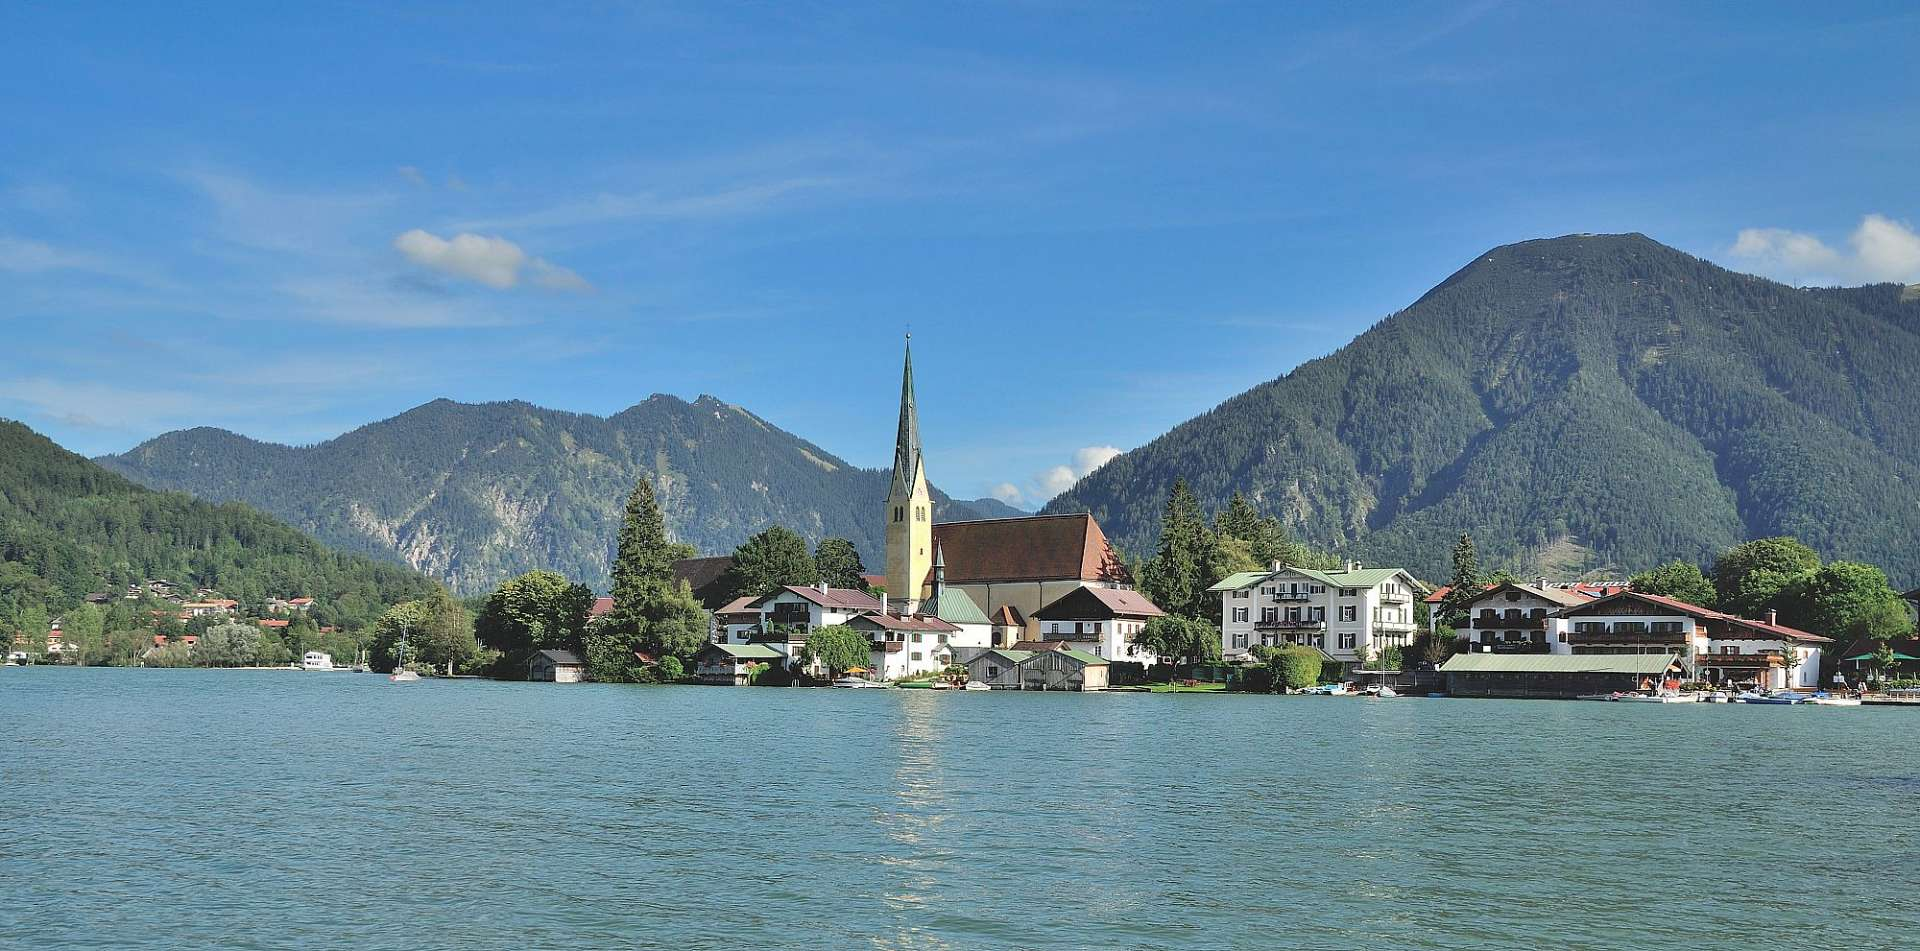 Tegernsee in Upper Bavaria